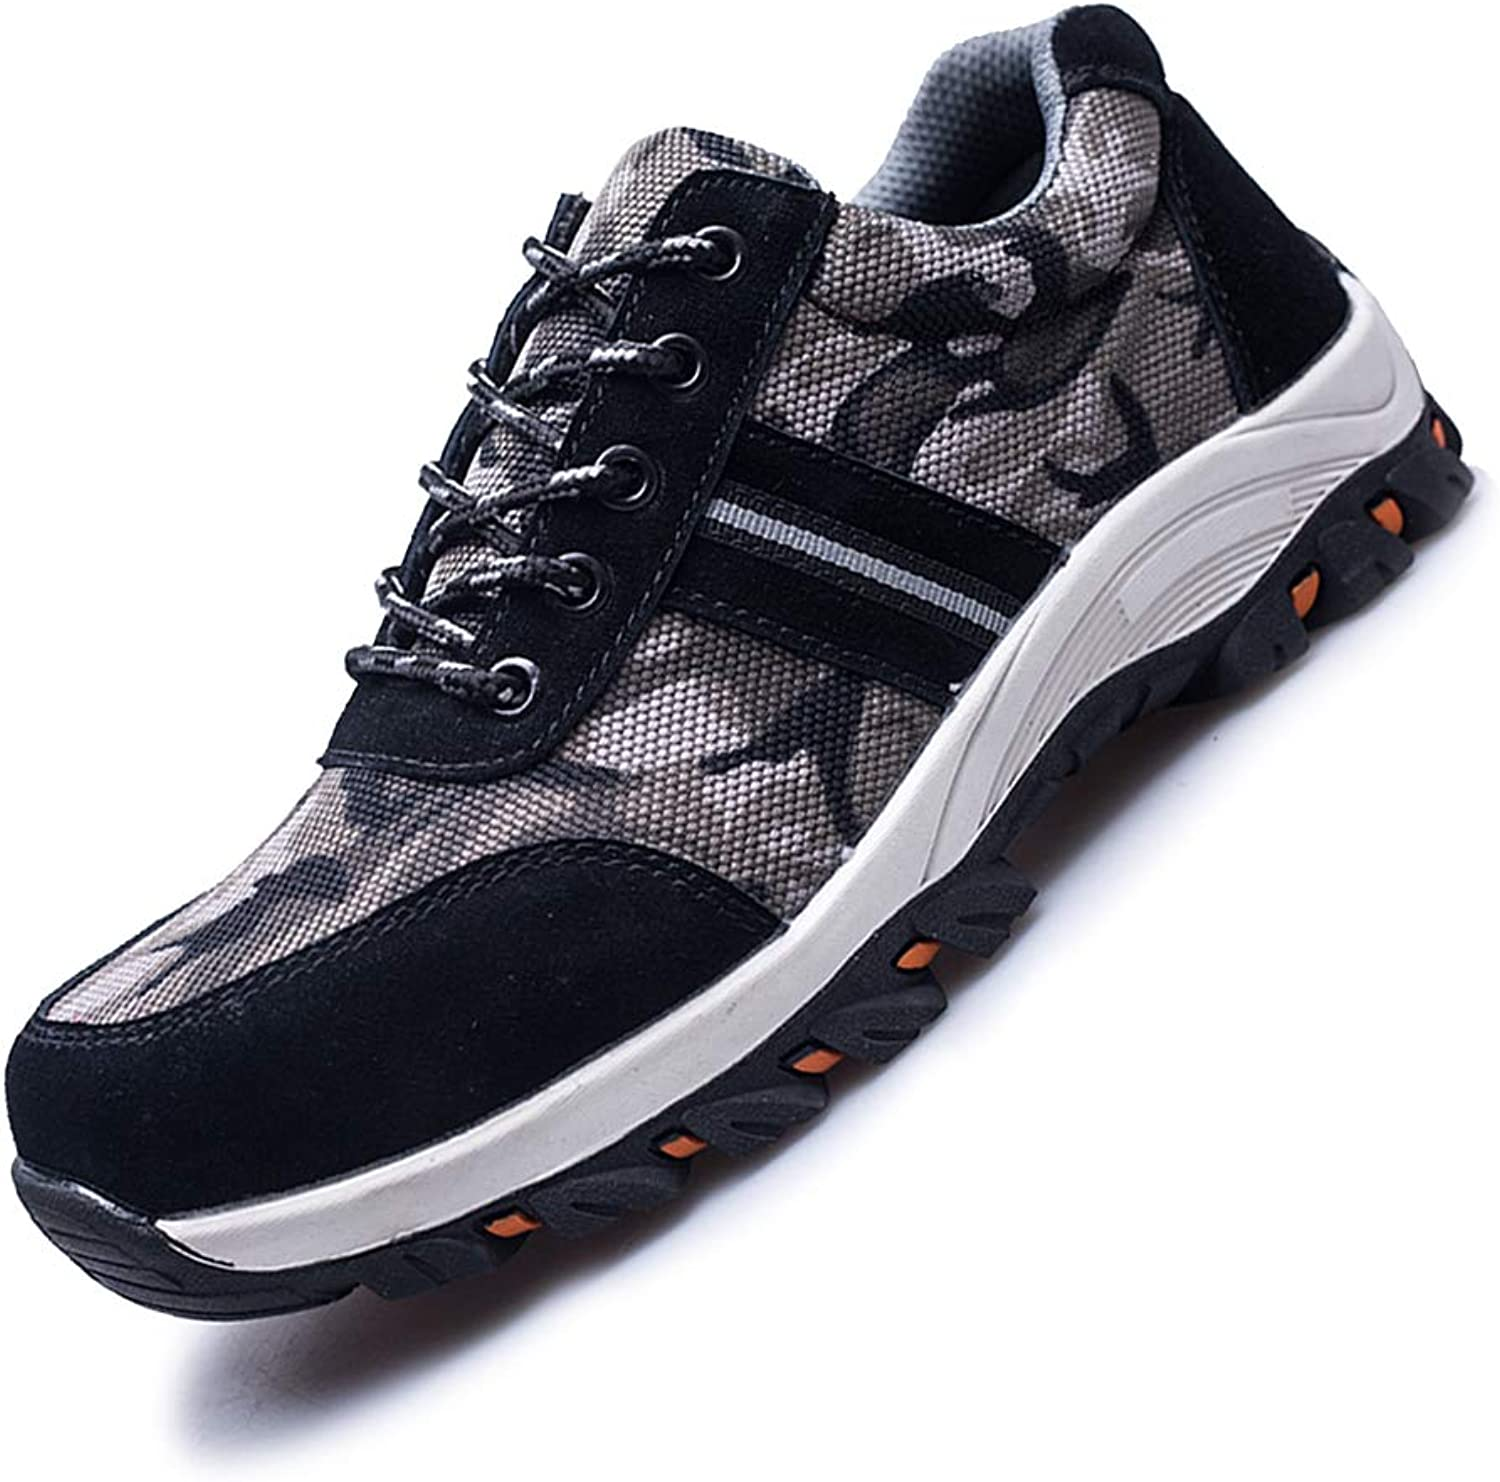 JACKSHIBO Steel Toe shoes Men Women, Work Safety shoes Breathable Industrial Construction shoes